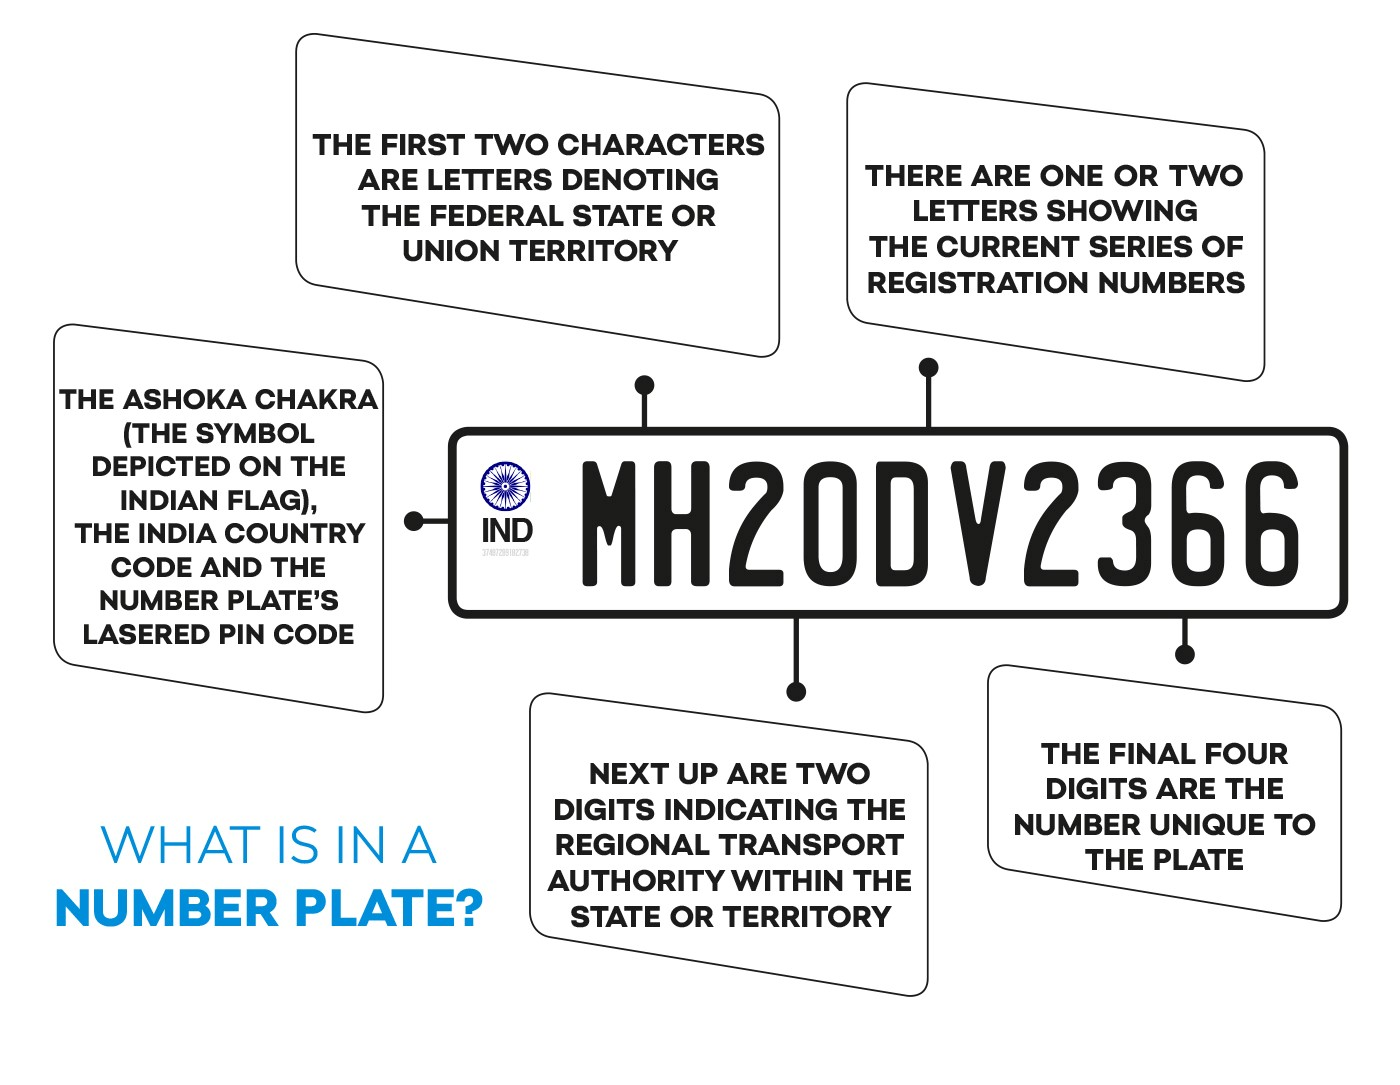 What is in a number plate?